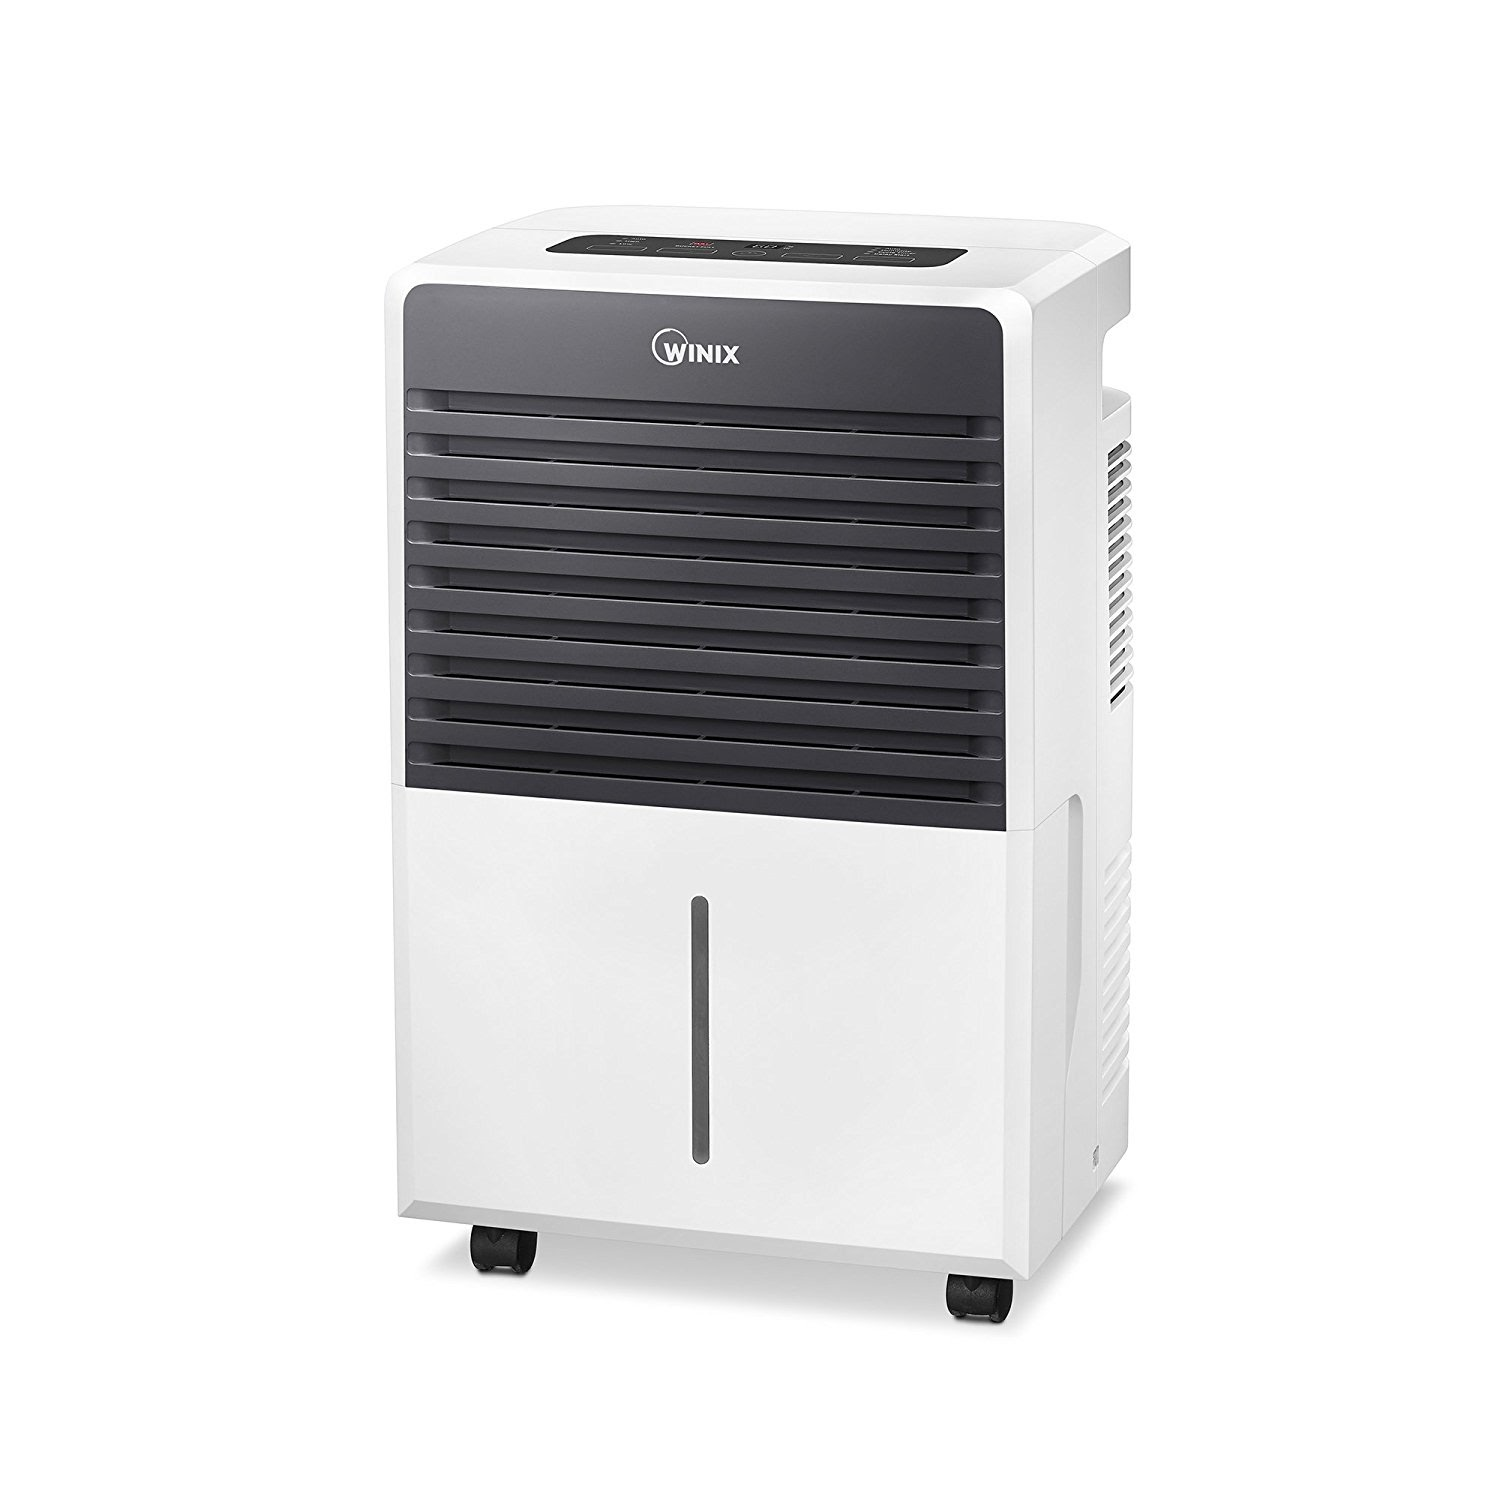 Home, Garden & More...: Winix 50BT 50 Pint Dehumidifier